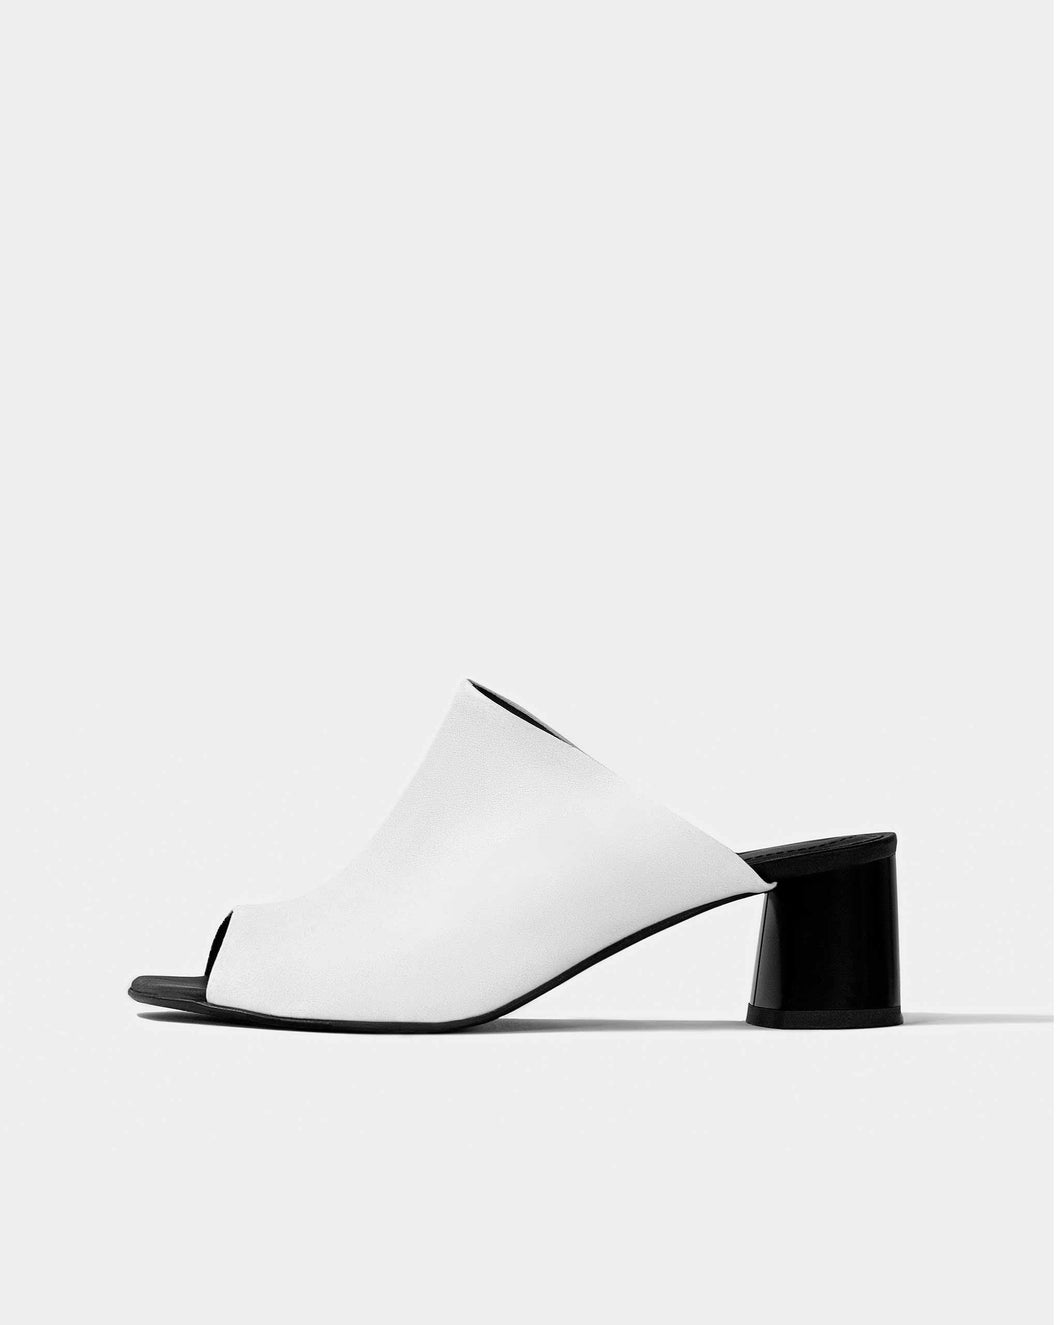 Uptown White Nopal cactus leather sandals